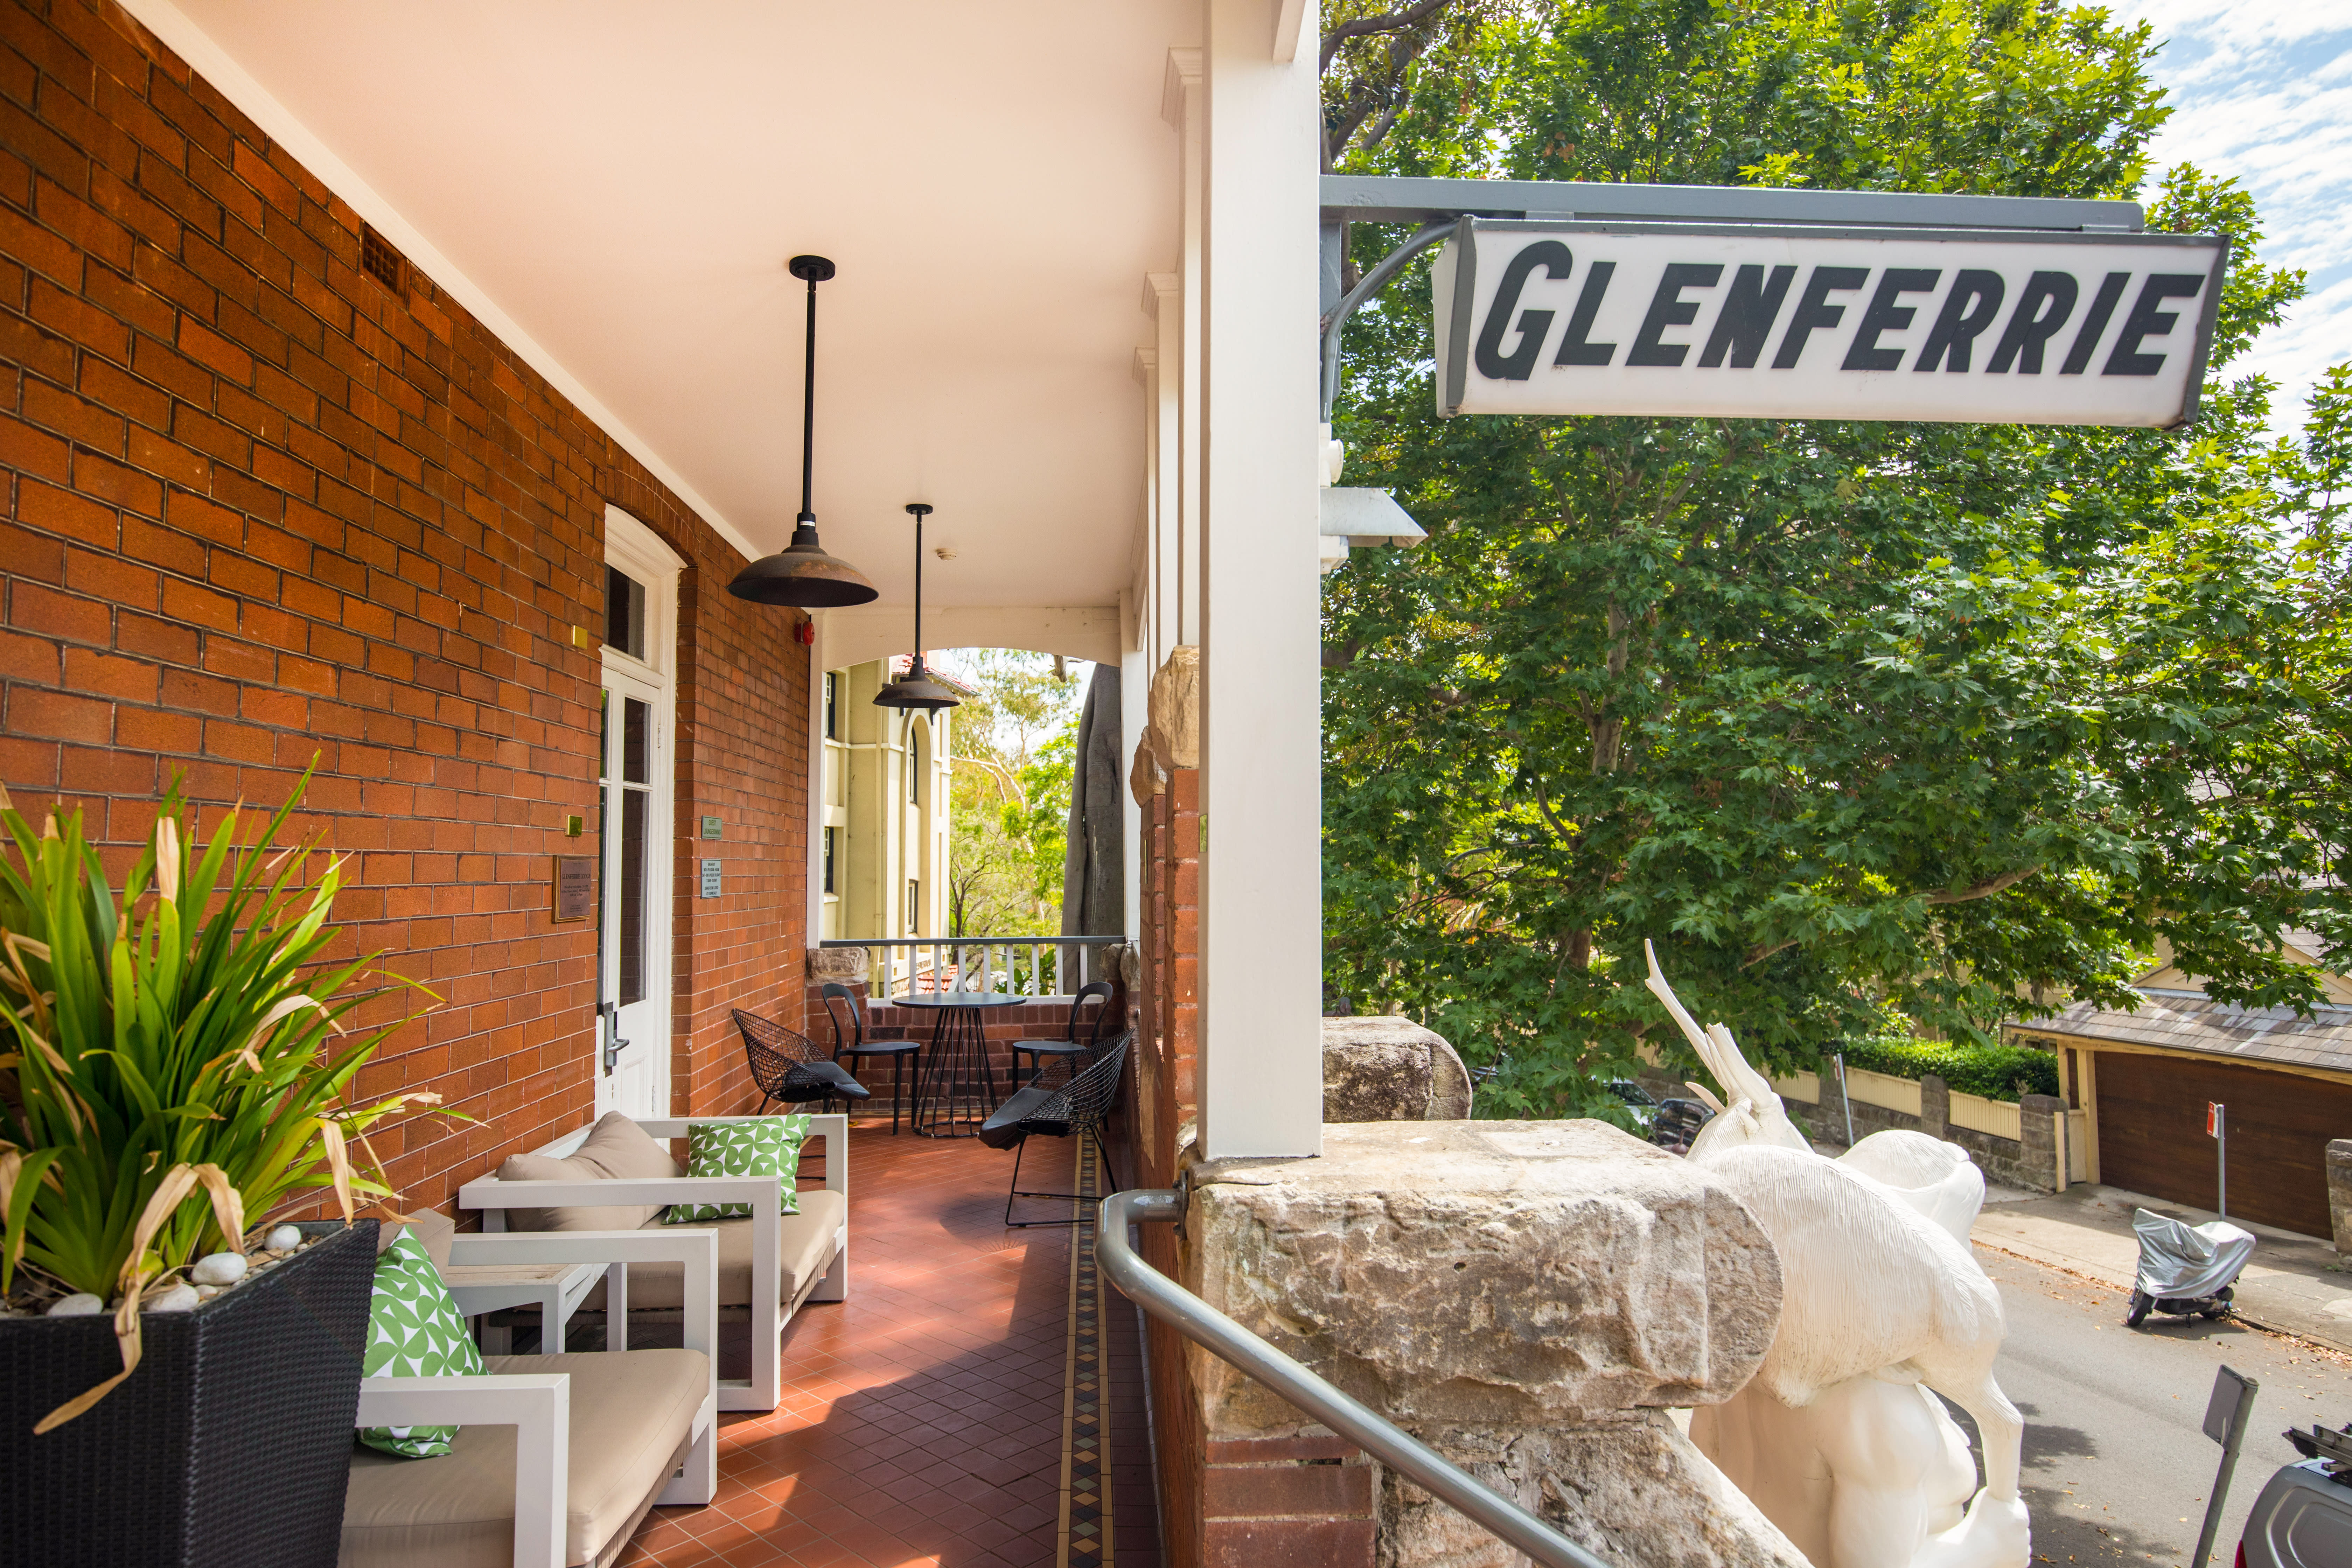 GUESTHOUSE - Glenferrie Lodge